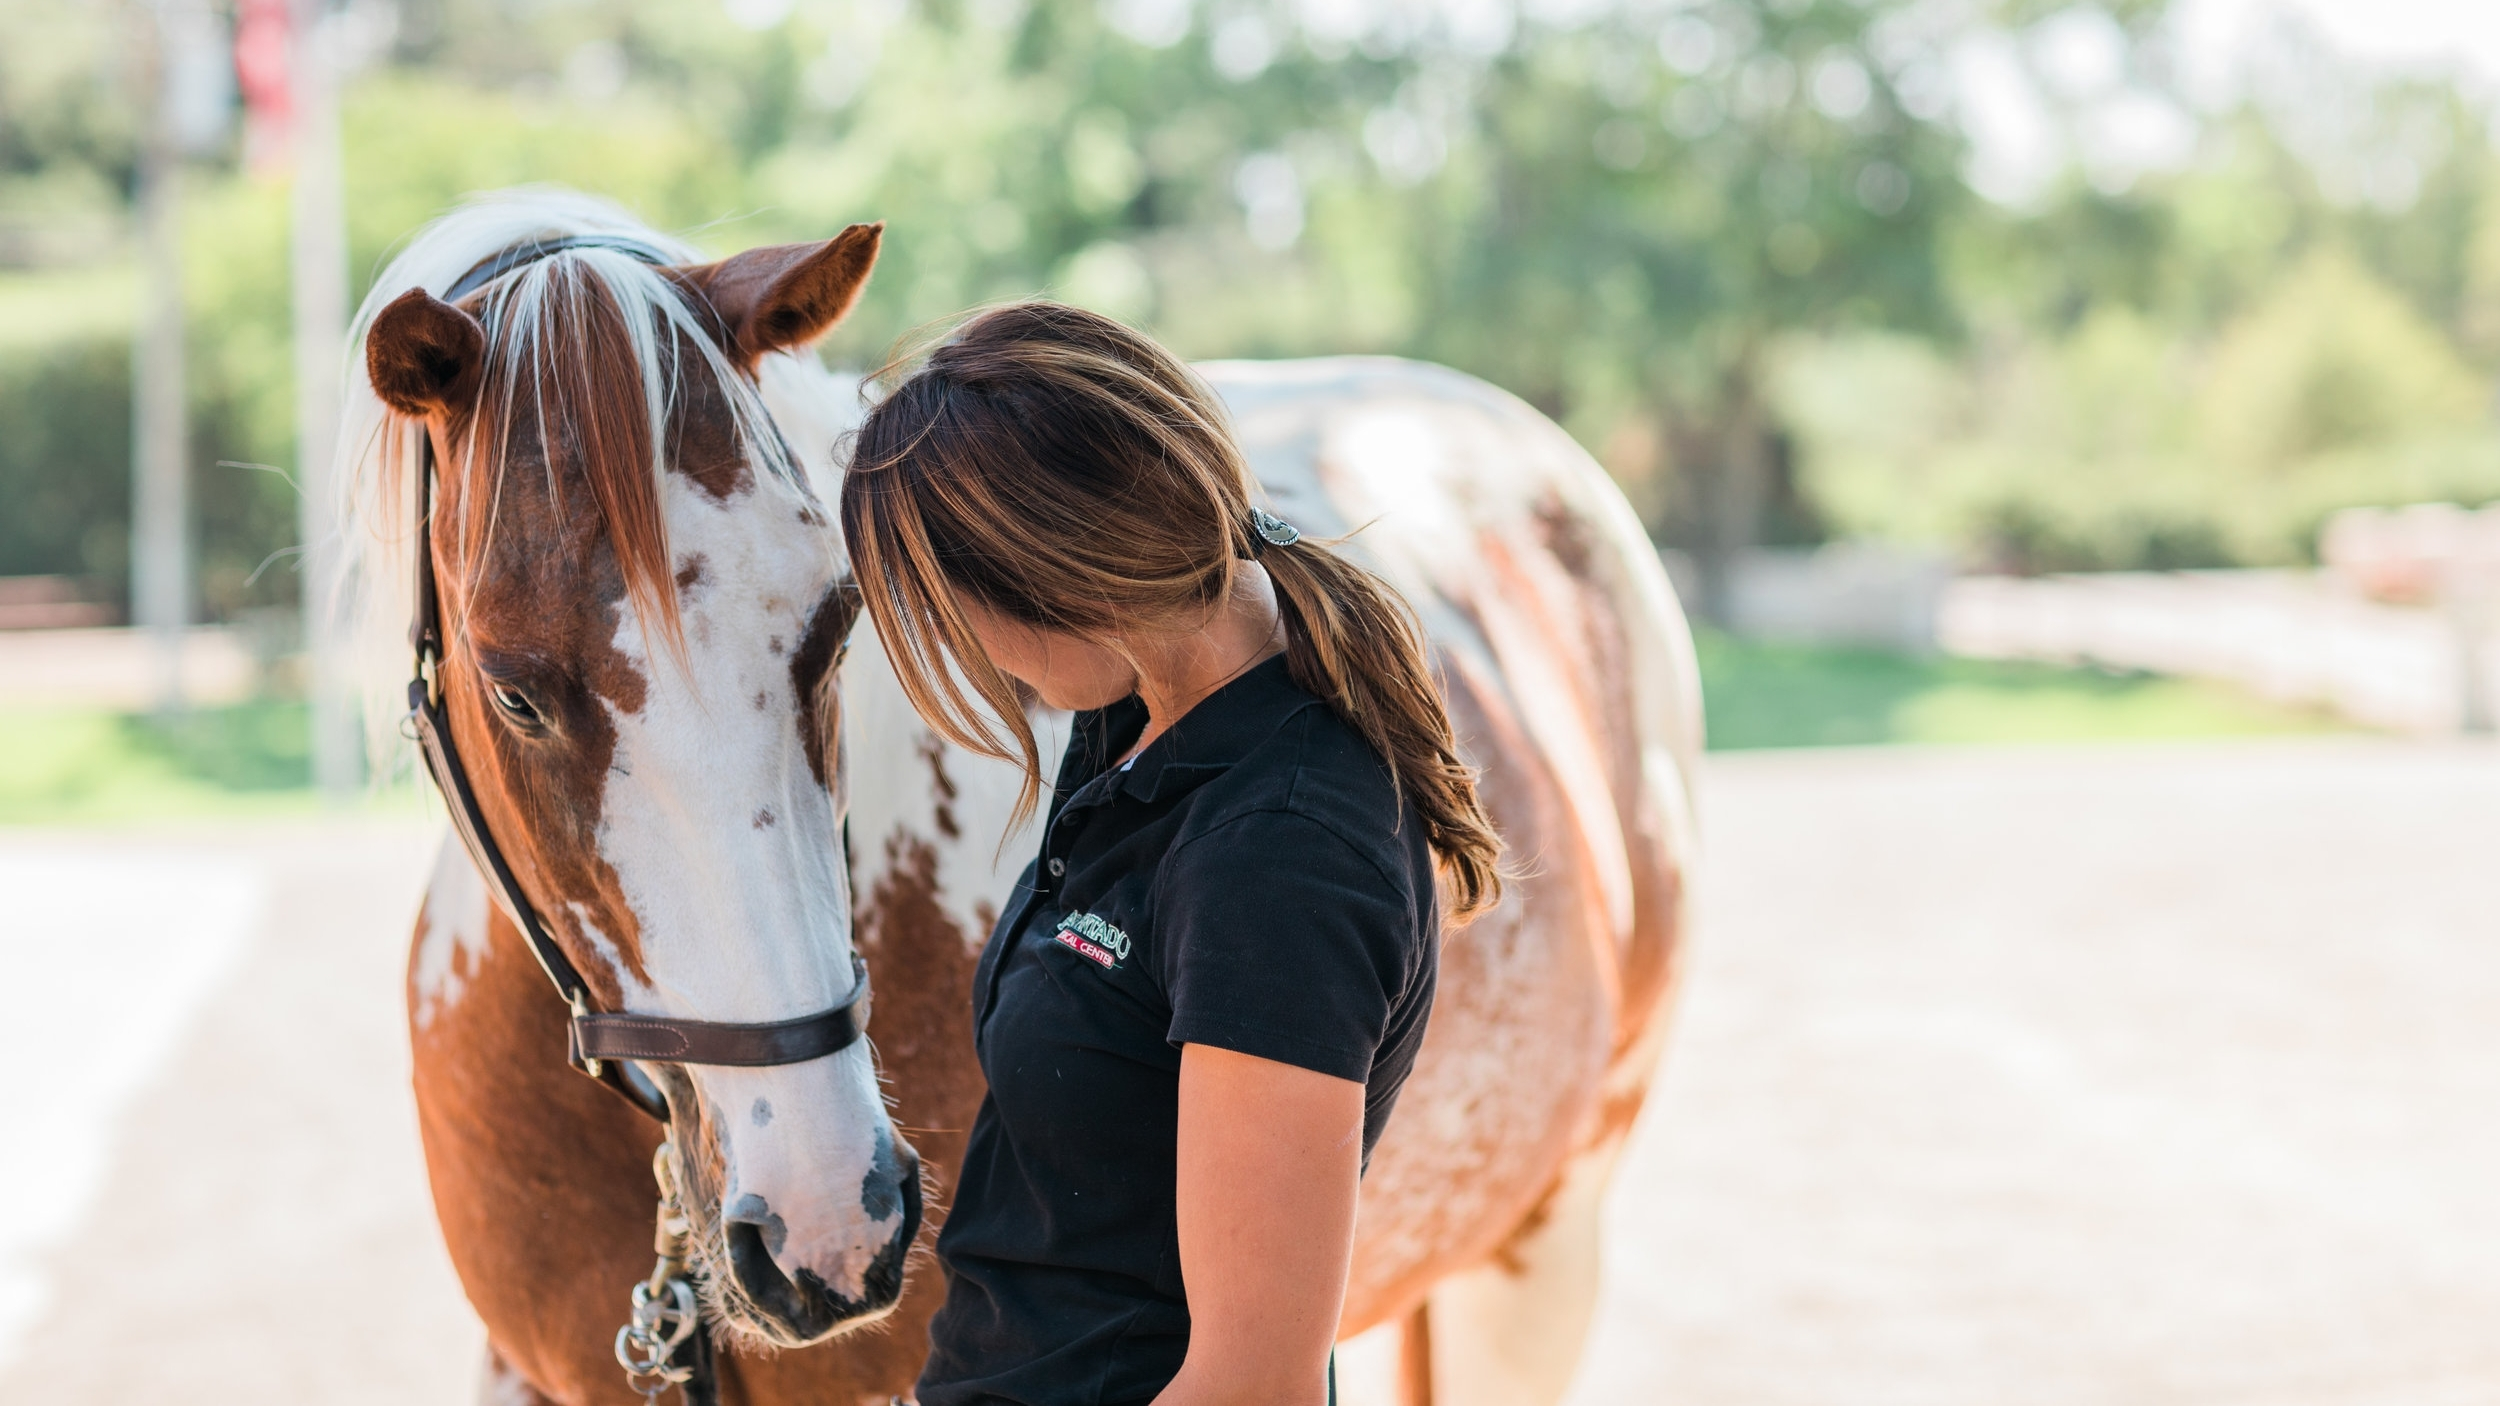 WE LOOK FORWARD TO WELCOMING YOU - Our team is standing by to assist you with questions or to schedule an appointment.  We're dedicated to your horse's care and look forward to seeing you.